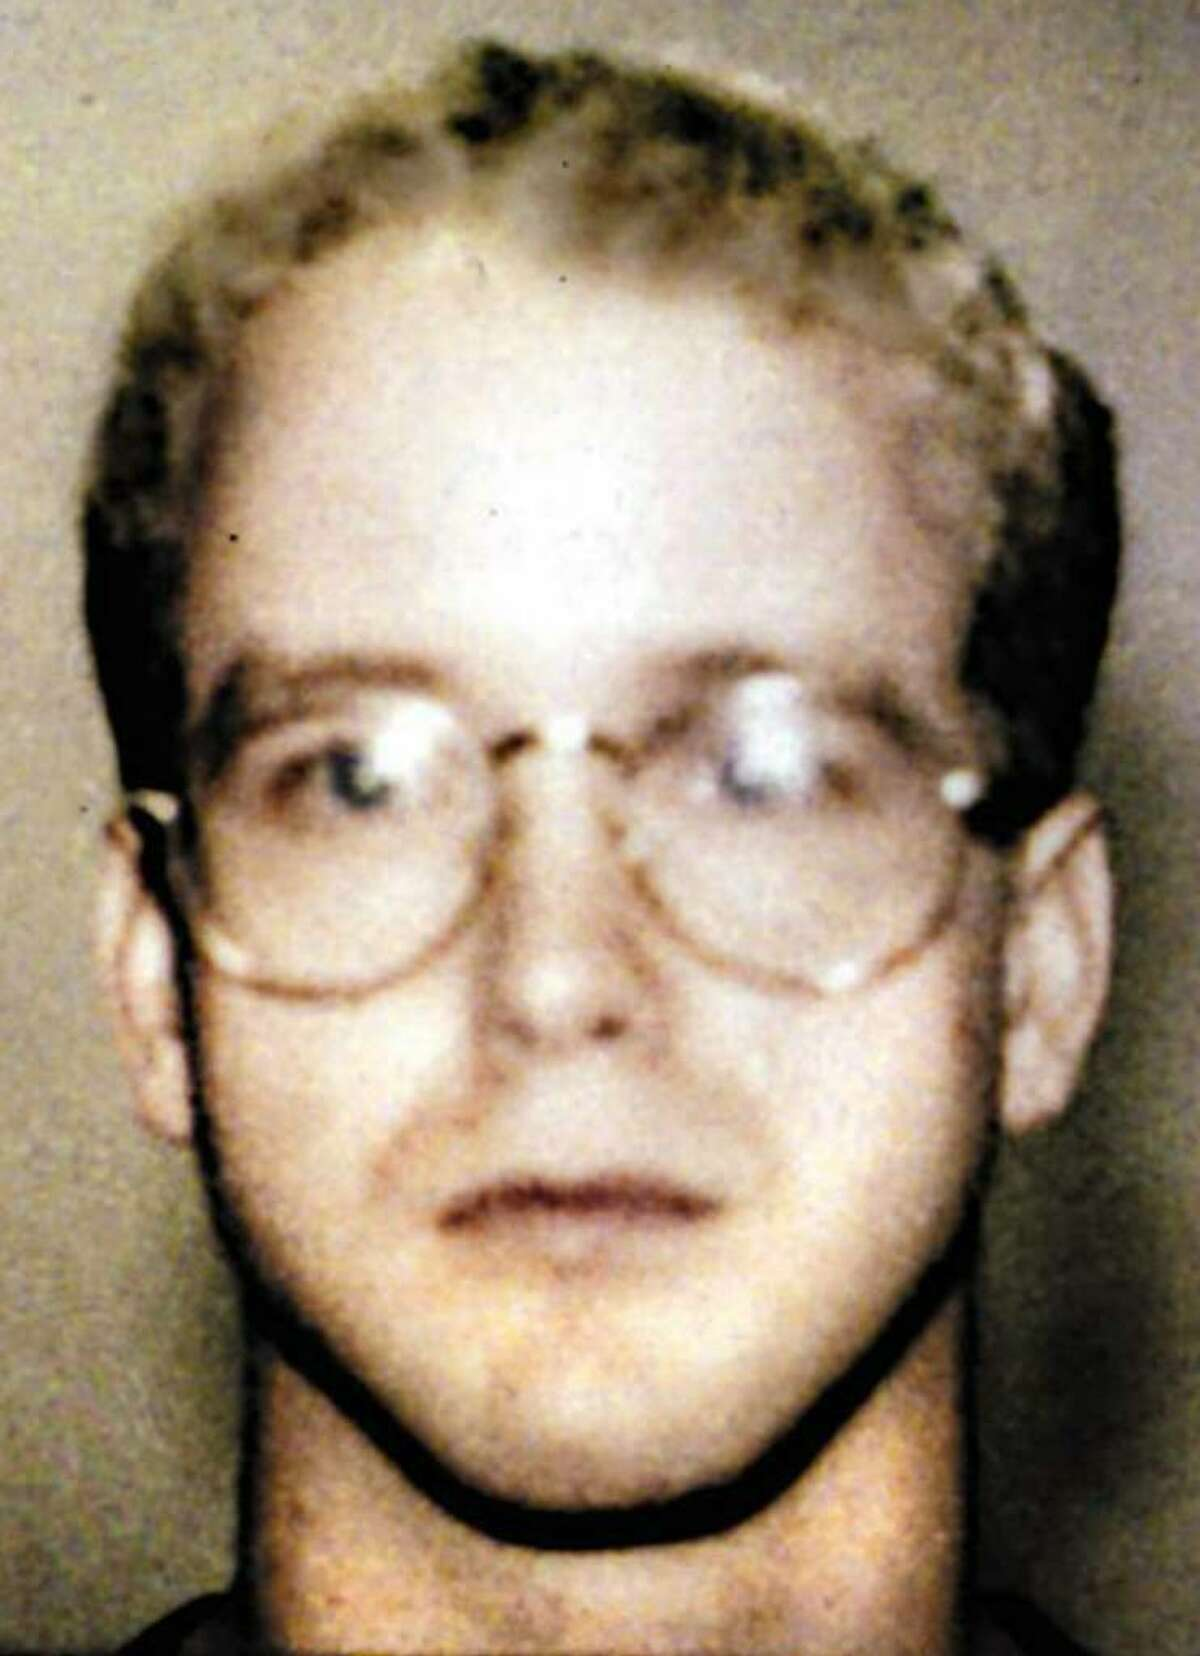 Convicted sex offender Patrick Slater, shown here in this undated file photo, is being held in New York state custody under a new civil confinement law in that state despite completing a 14-year federal prison sentence in May 2009. Slater molested two young boys while working as a nanny in Greenwich and Armonk, N.Y., in the 1990s.